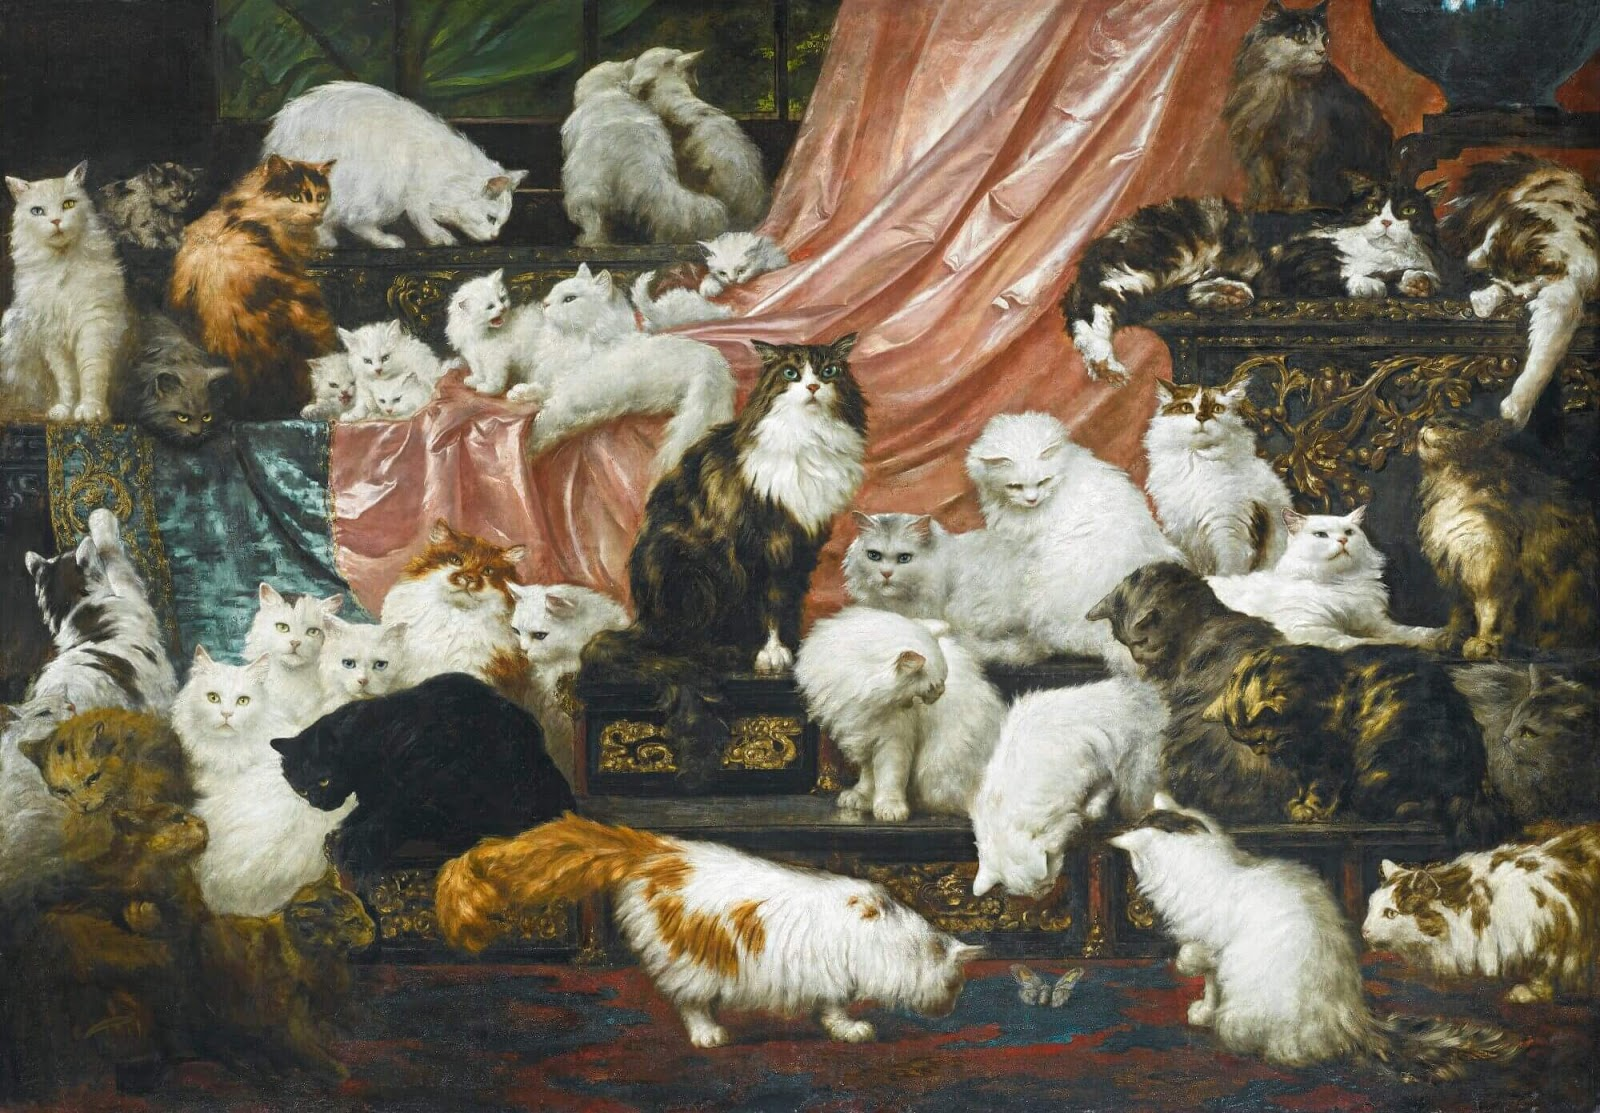 Photo of dozens of cats lounging in a regal setting